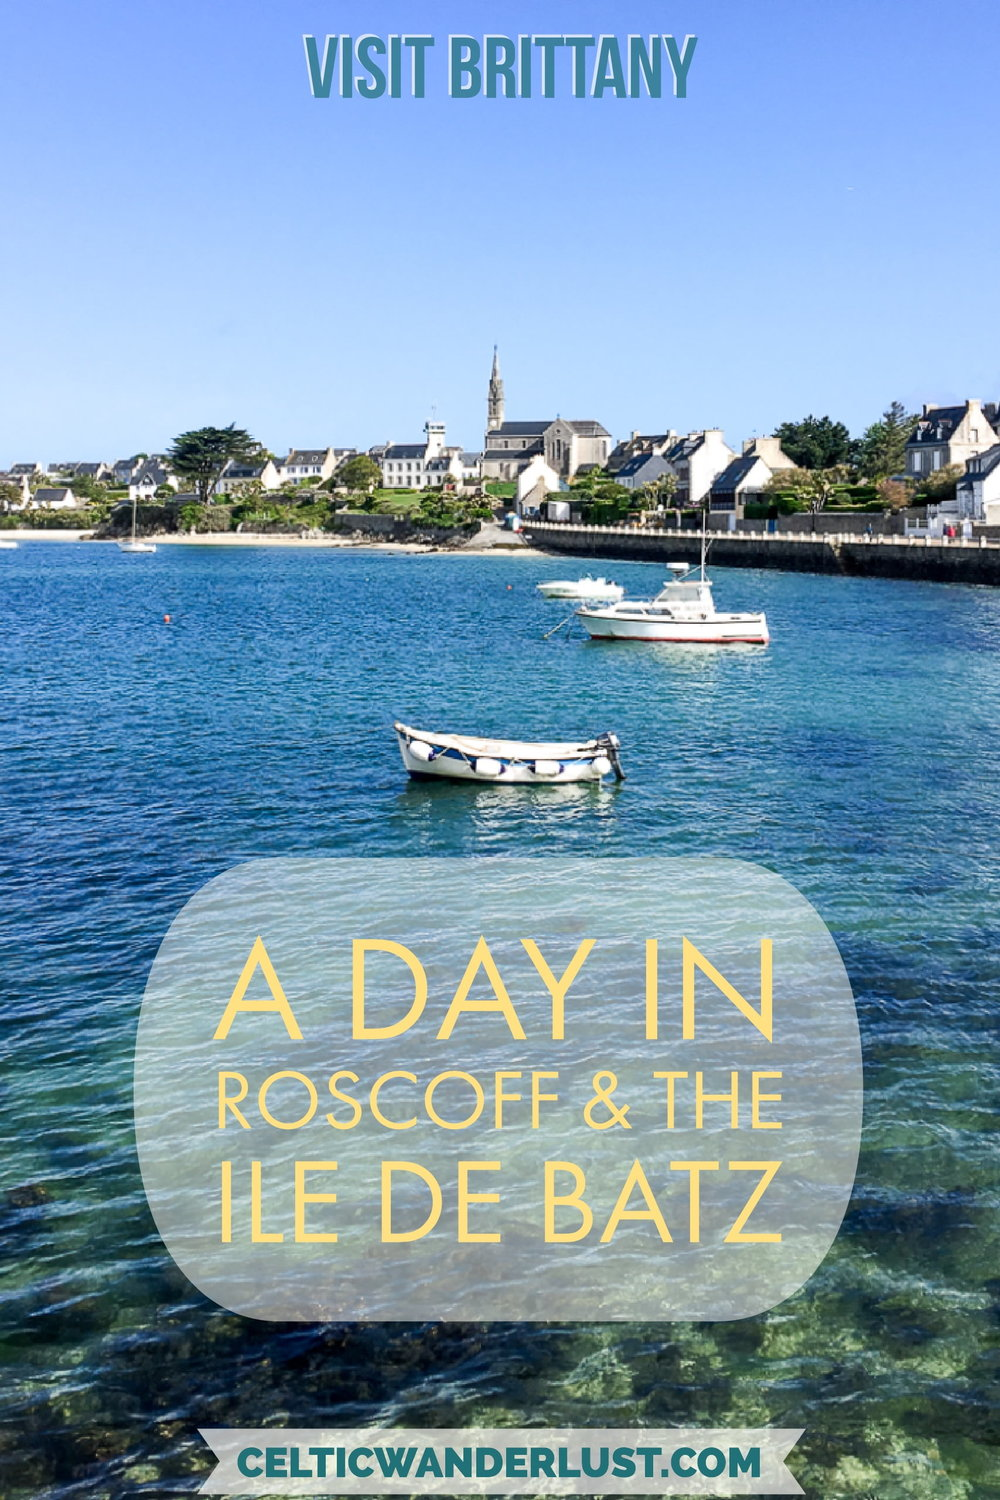 Best Places To Visit In Brittany: A Day In Roscoff And The Ile De Batz